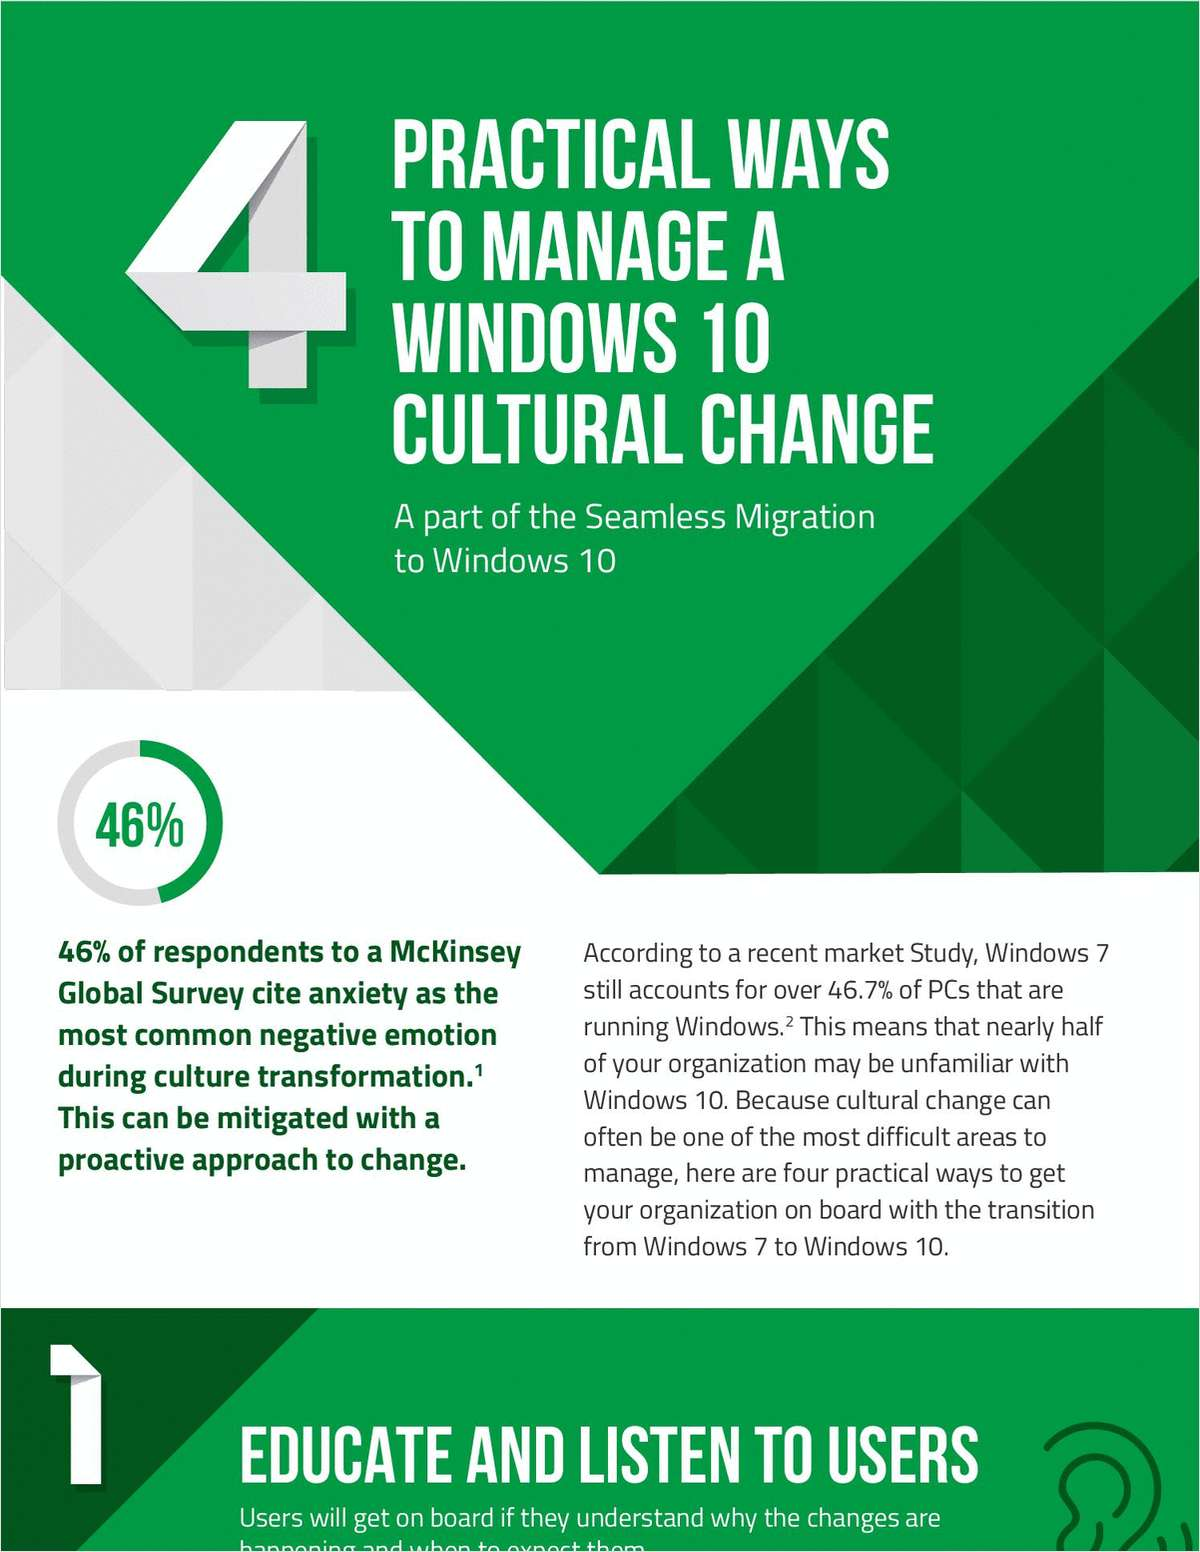 4 Practical Ways to Manage a Windows 10 Cultural Change